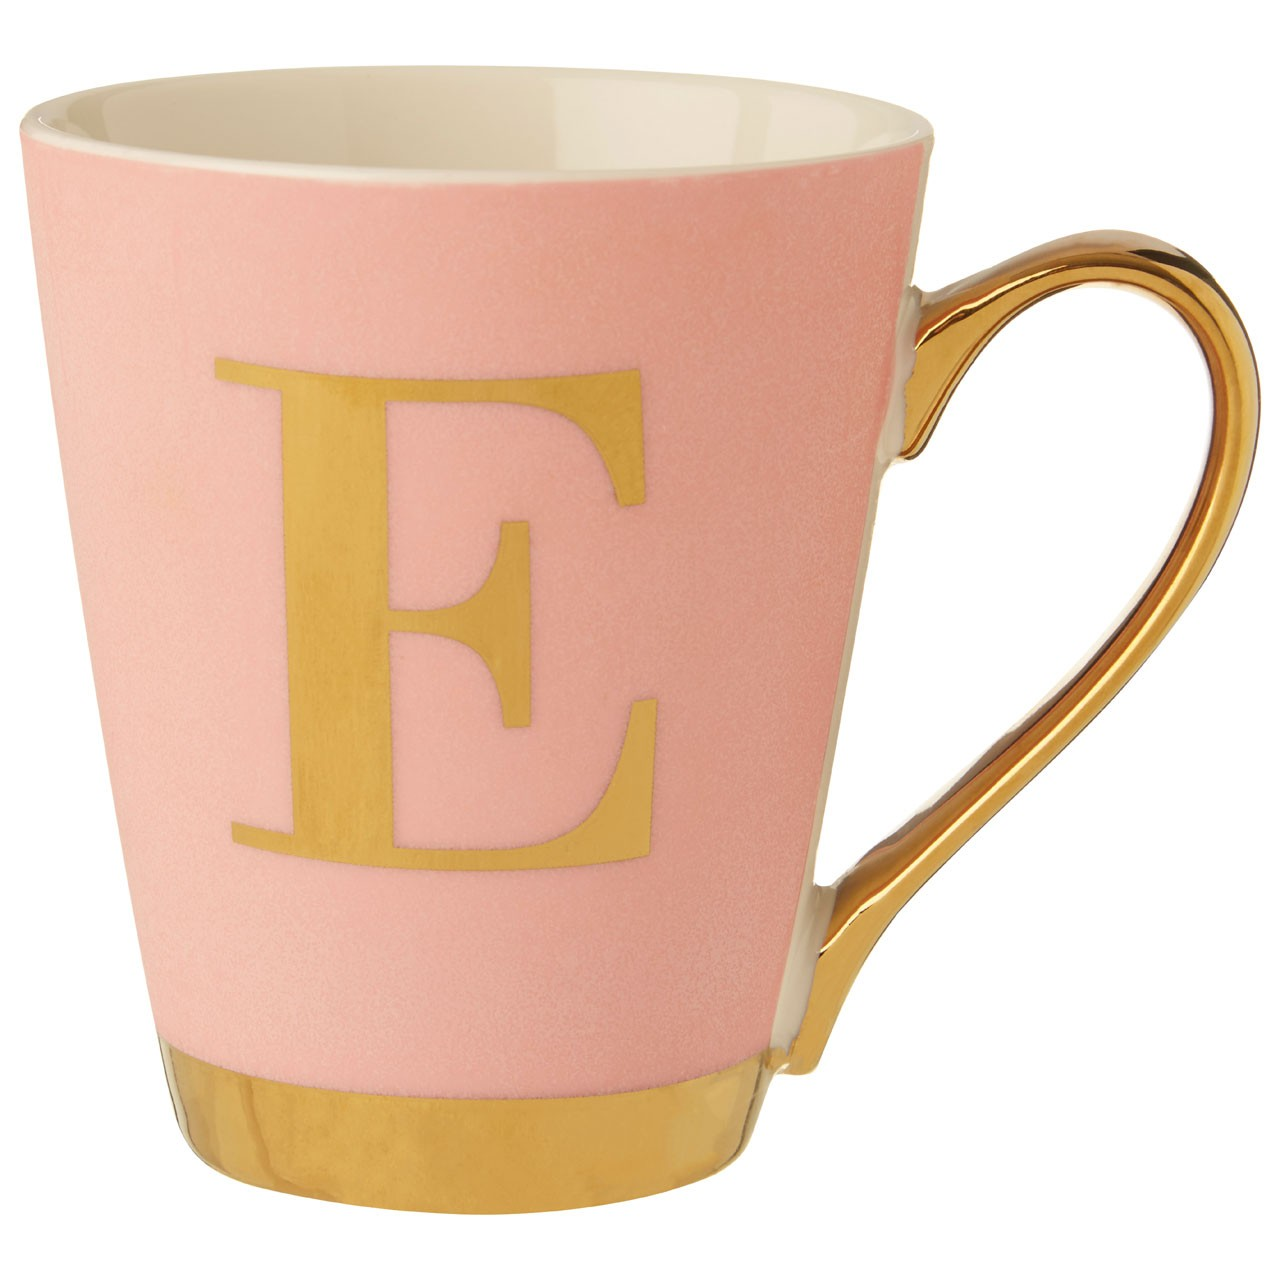 Mimo Pink Frosted Deco E Letter Monogram Mug